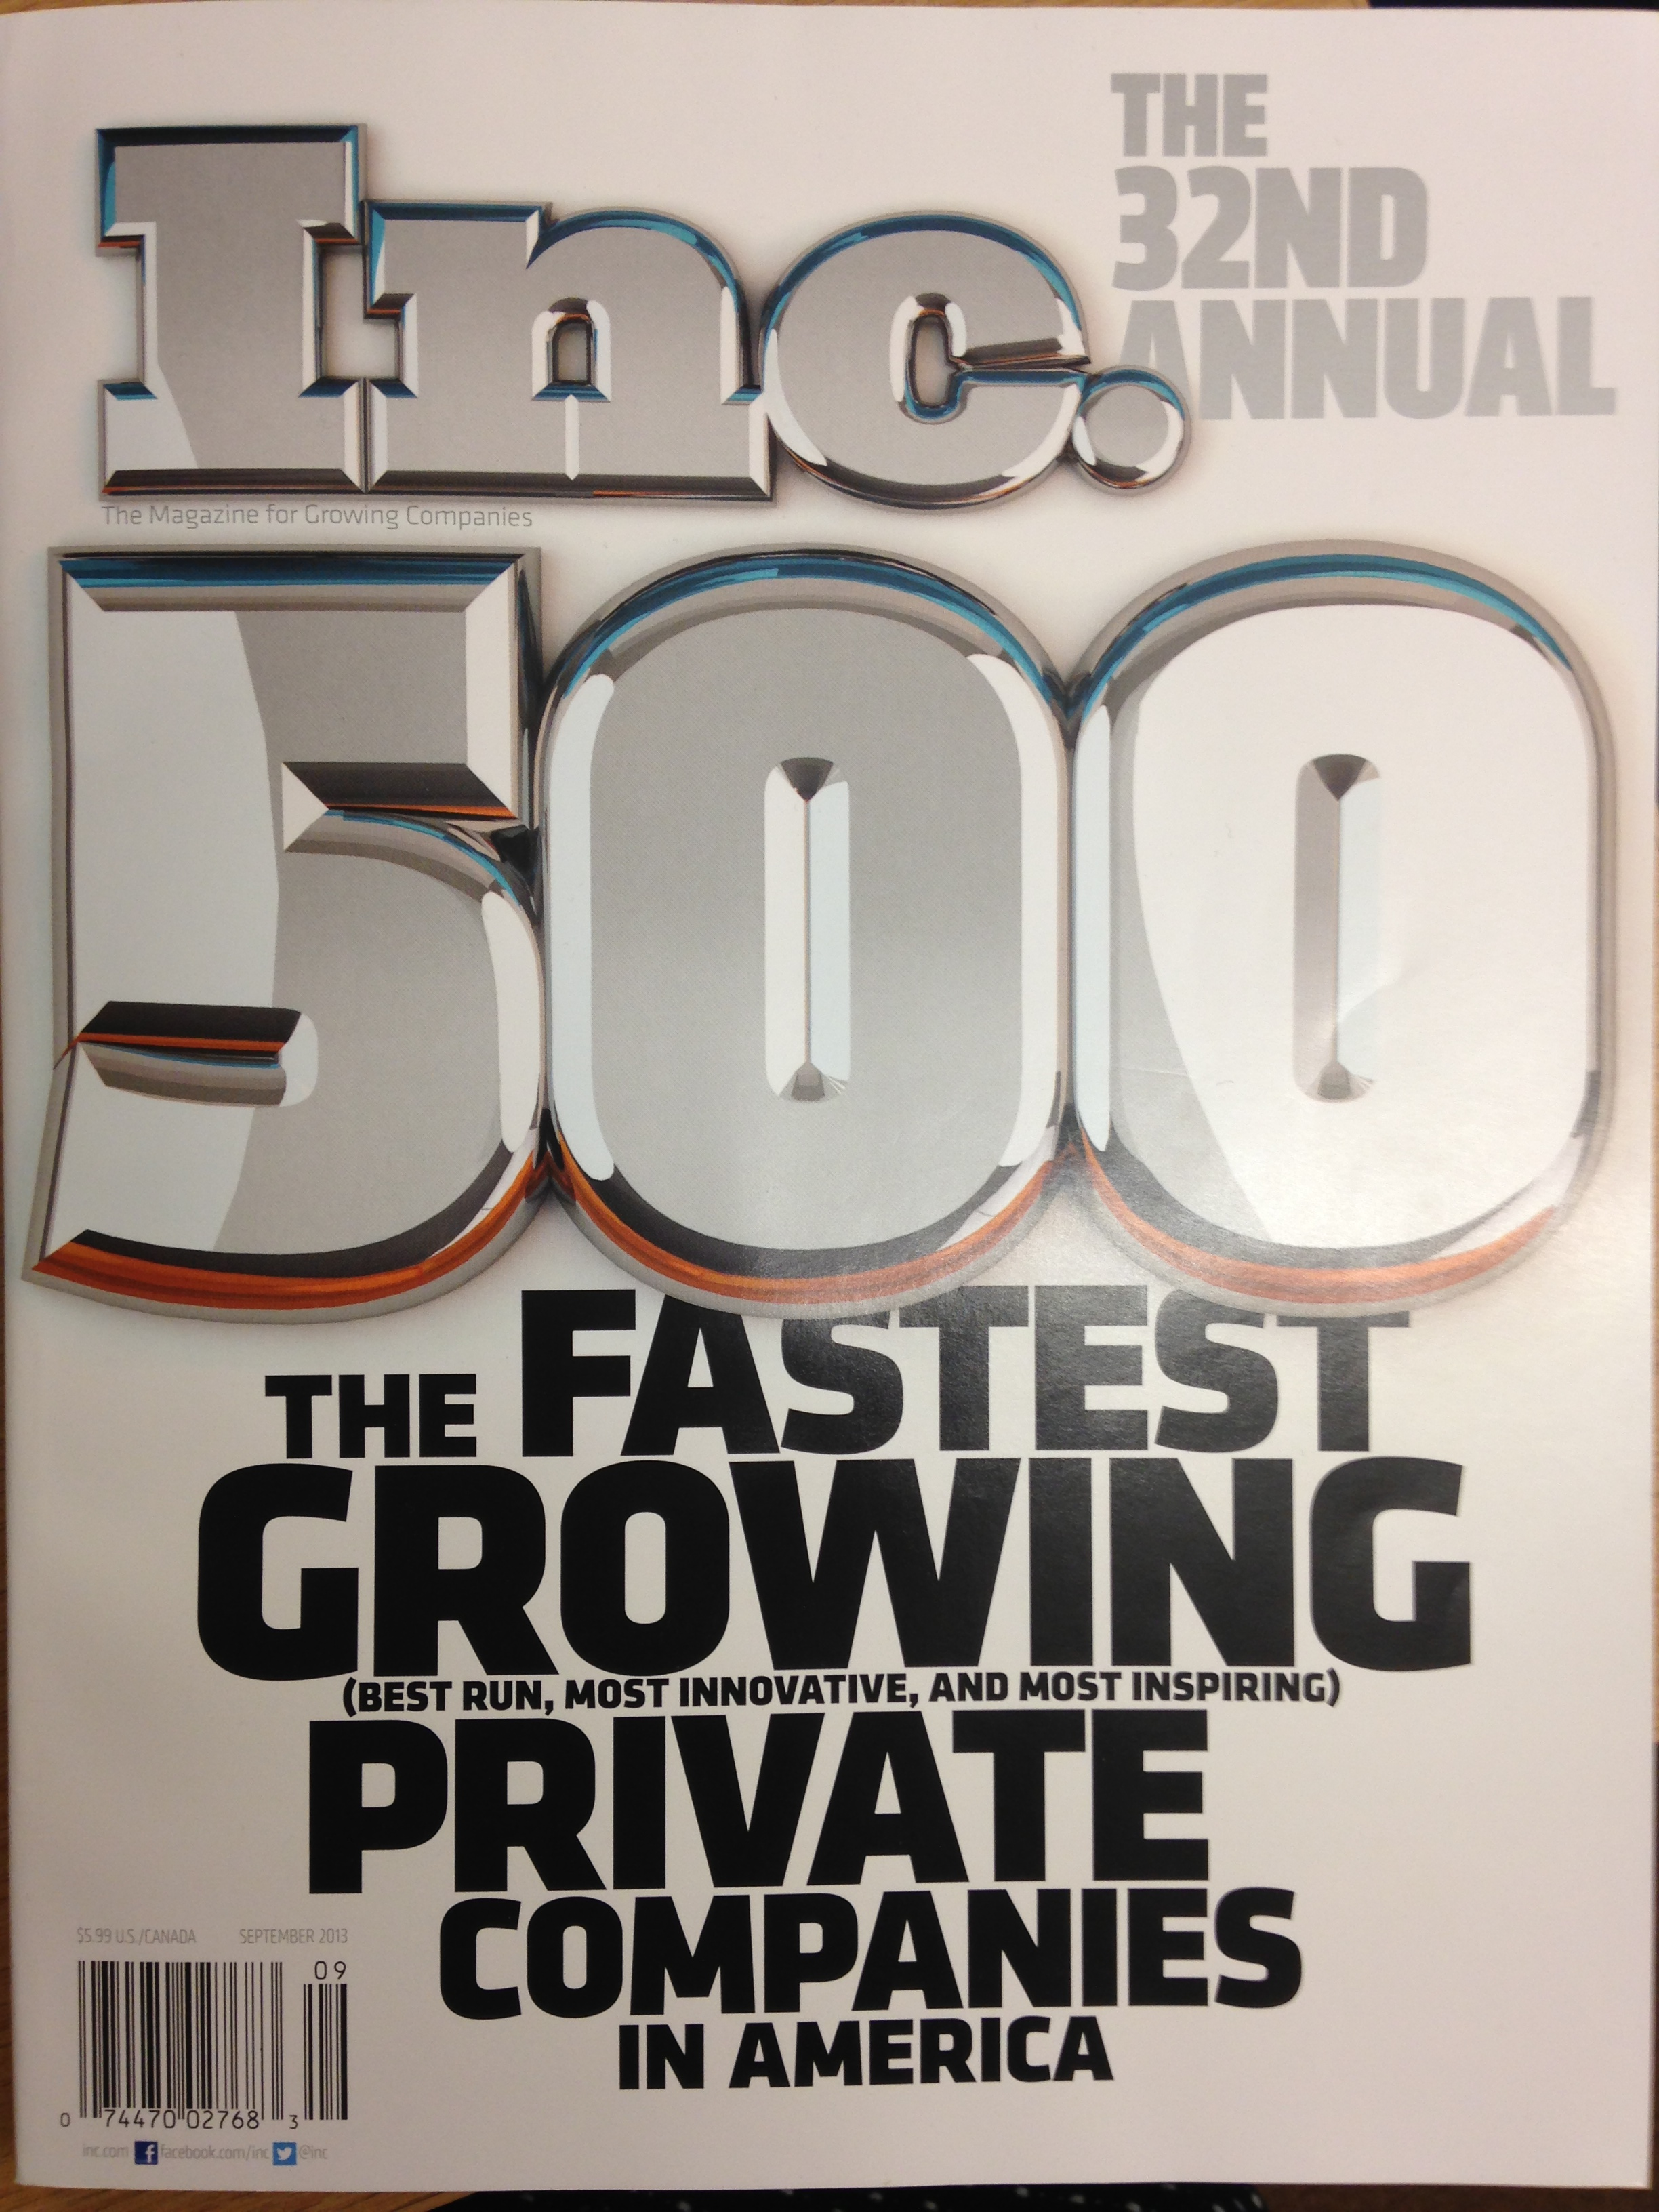 Content marketing agency Brafton made the Inc. 500 list of fastest growing companies for the second consecutive year.